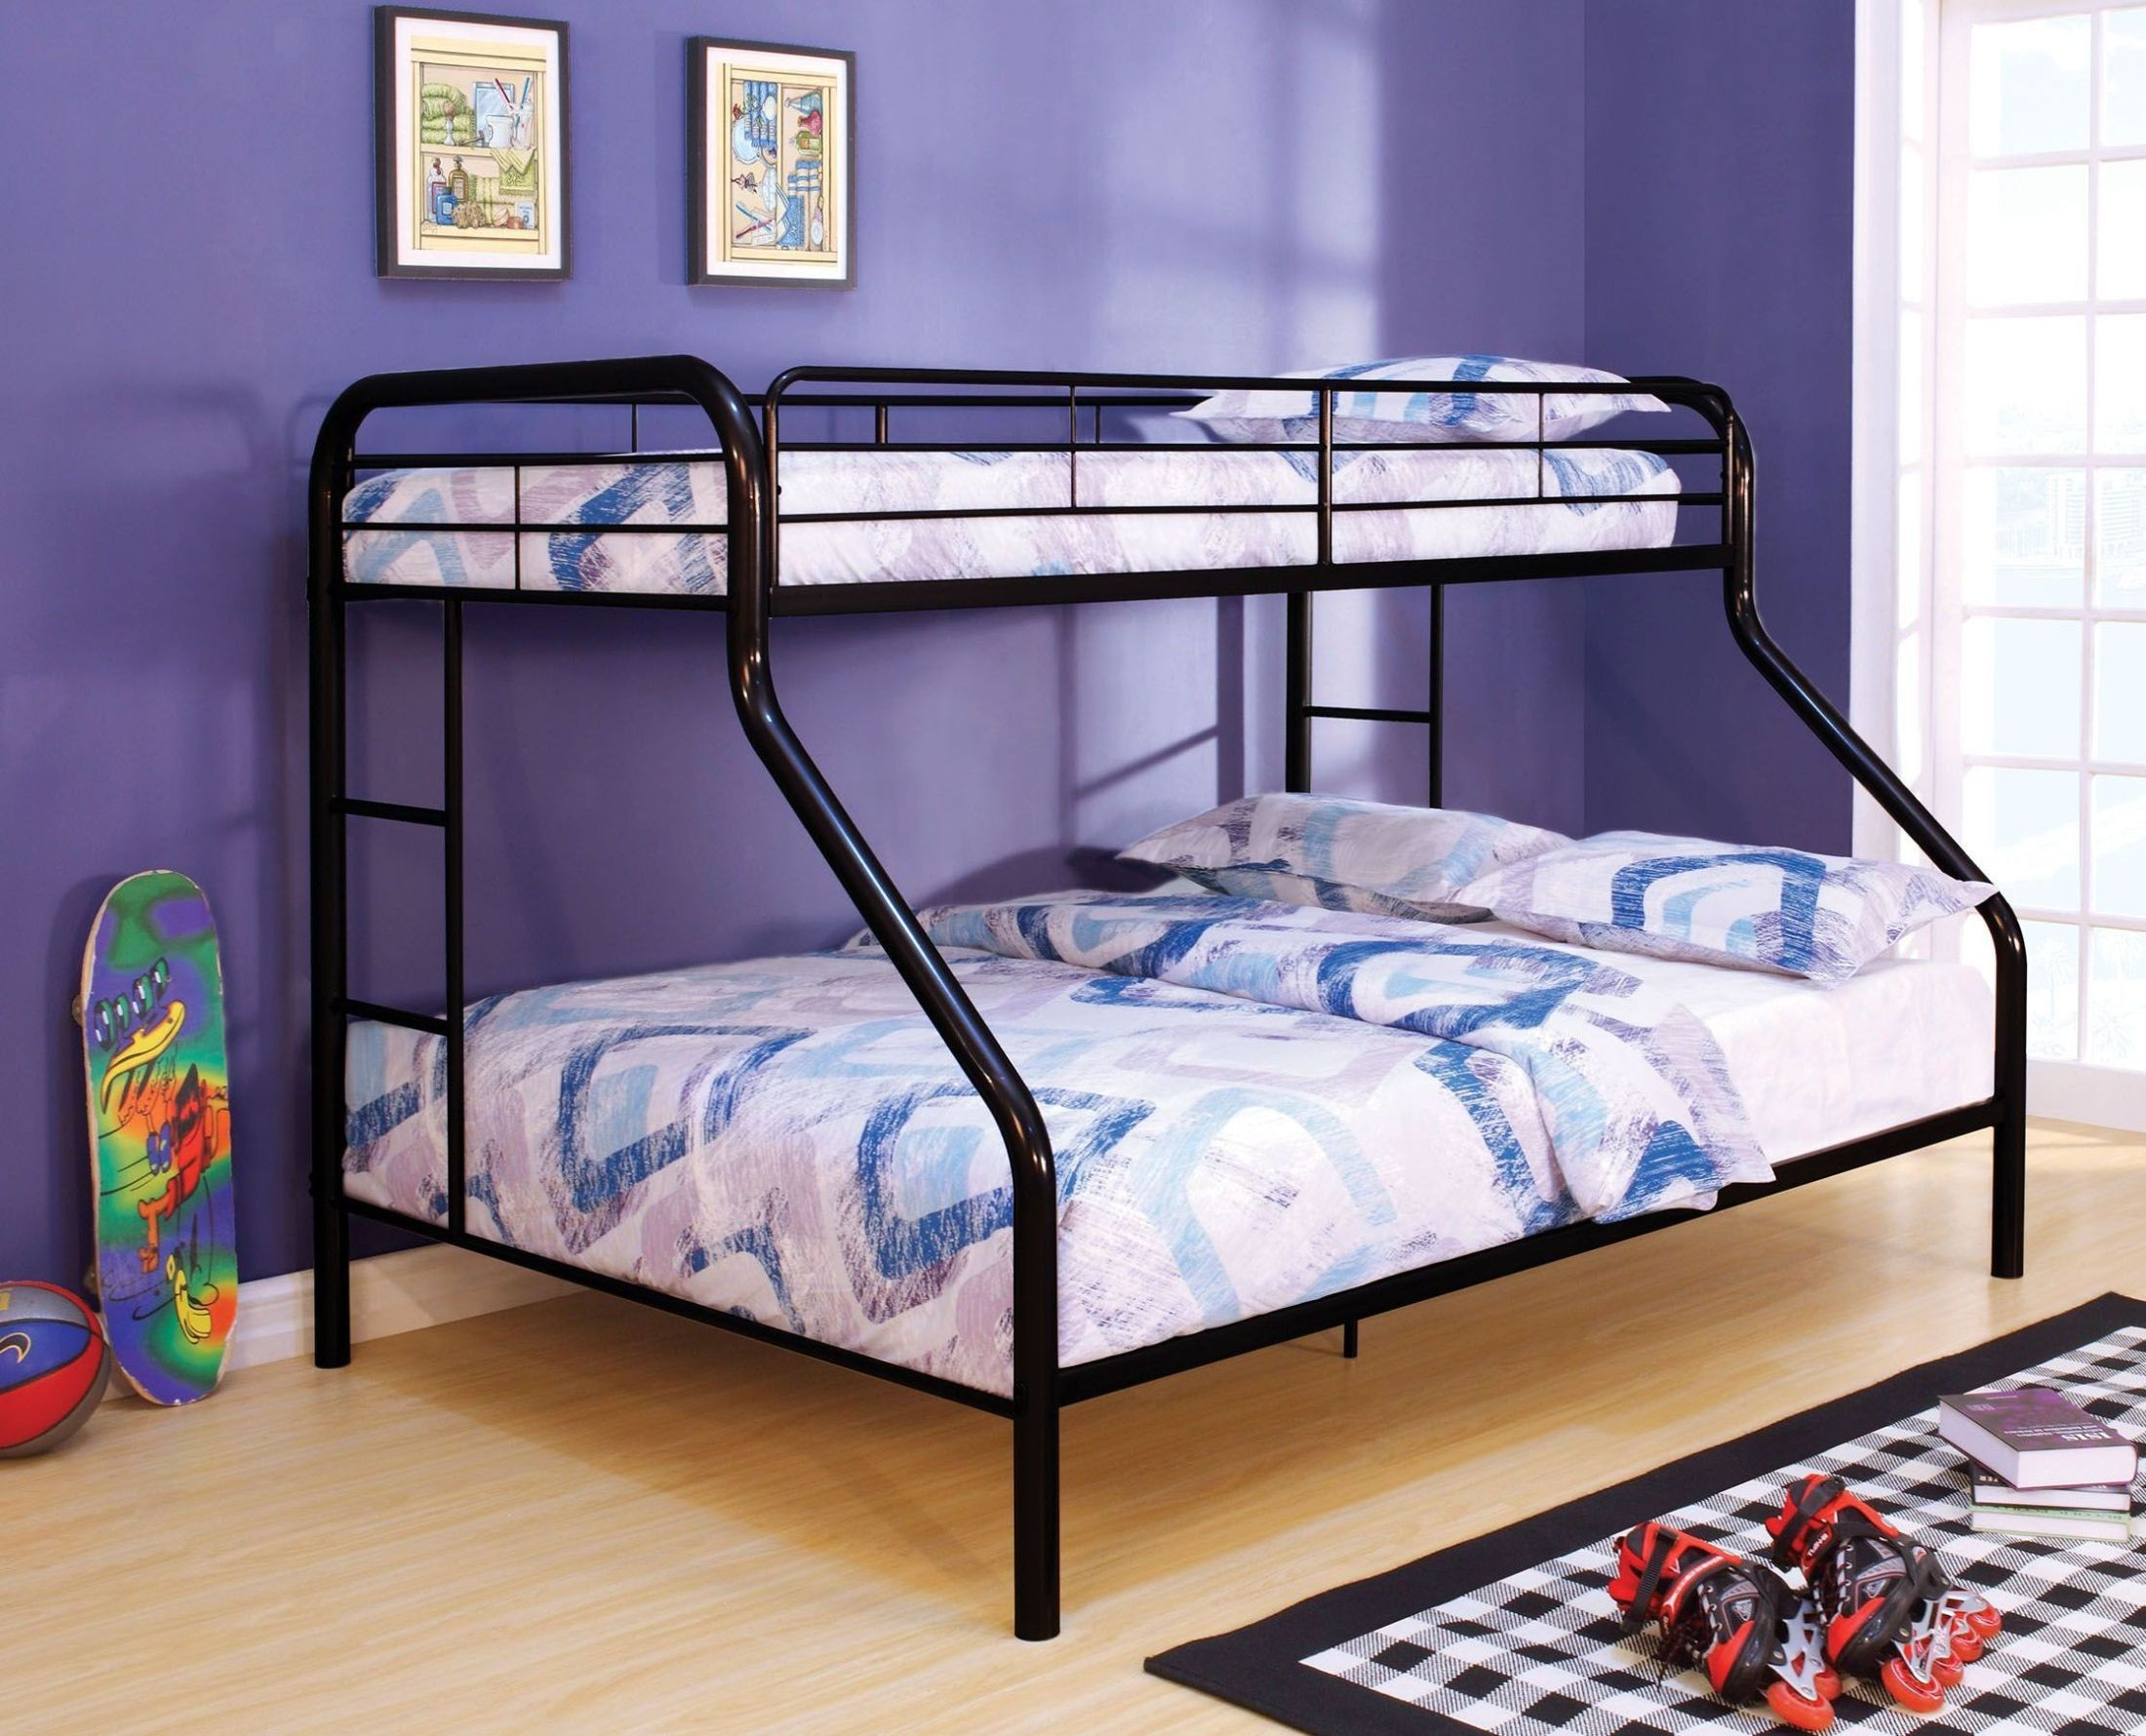 Rainbow black twin over queen bunk bed cm bk1133bk 2 twin beds make a queen